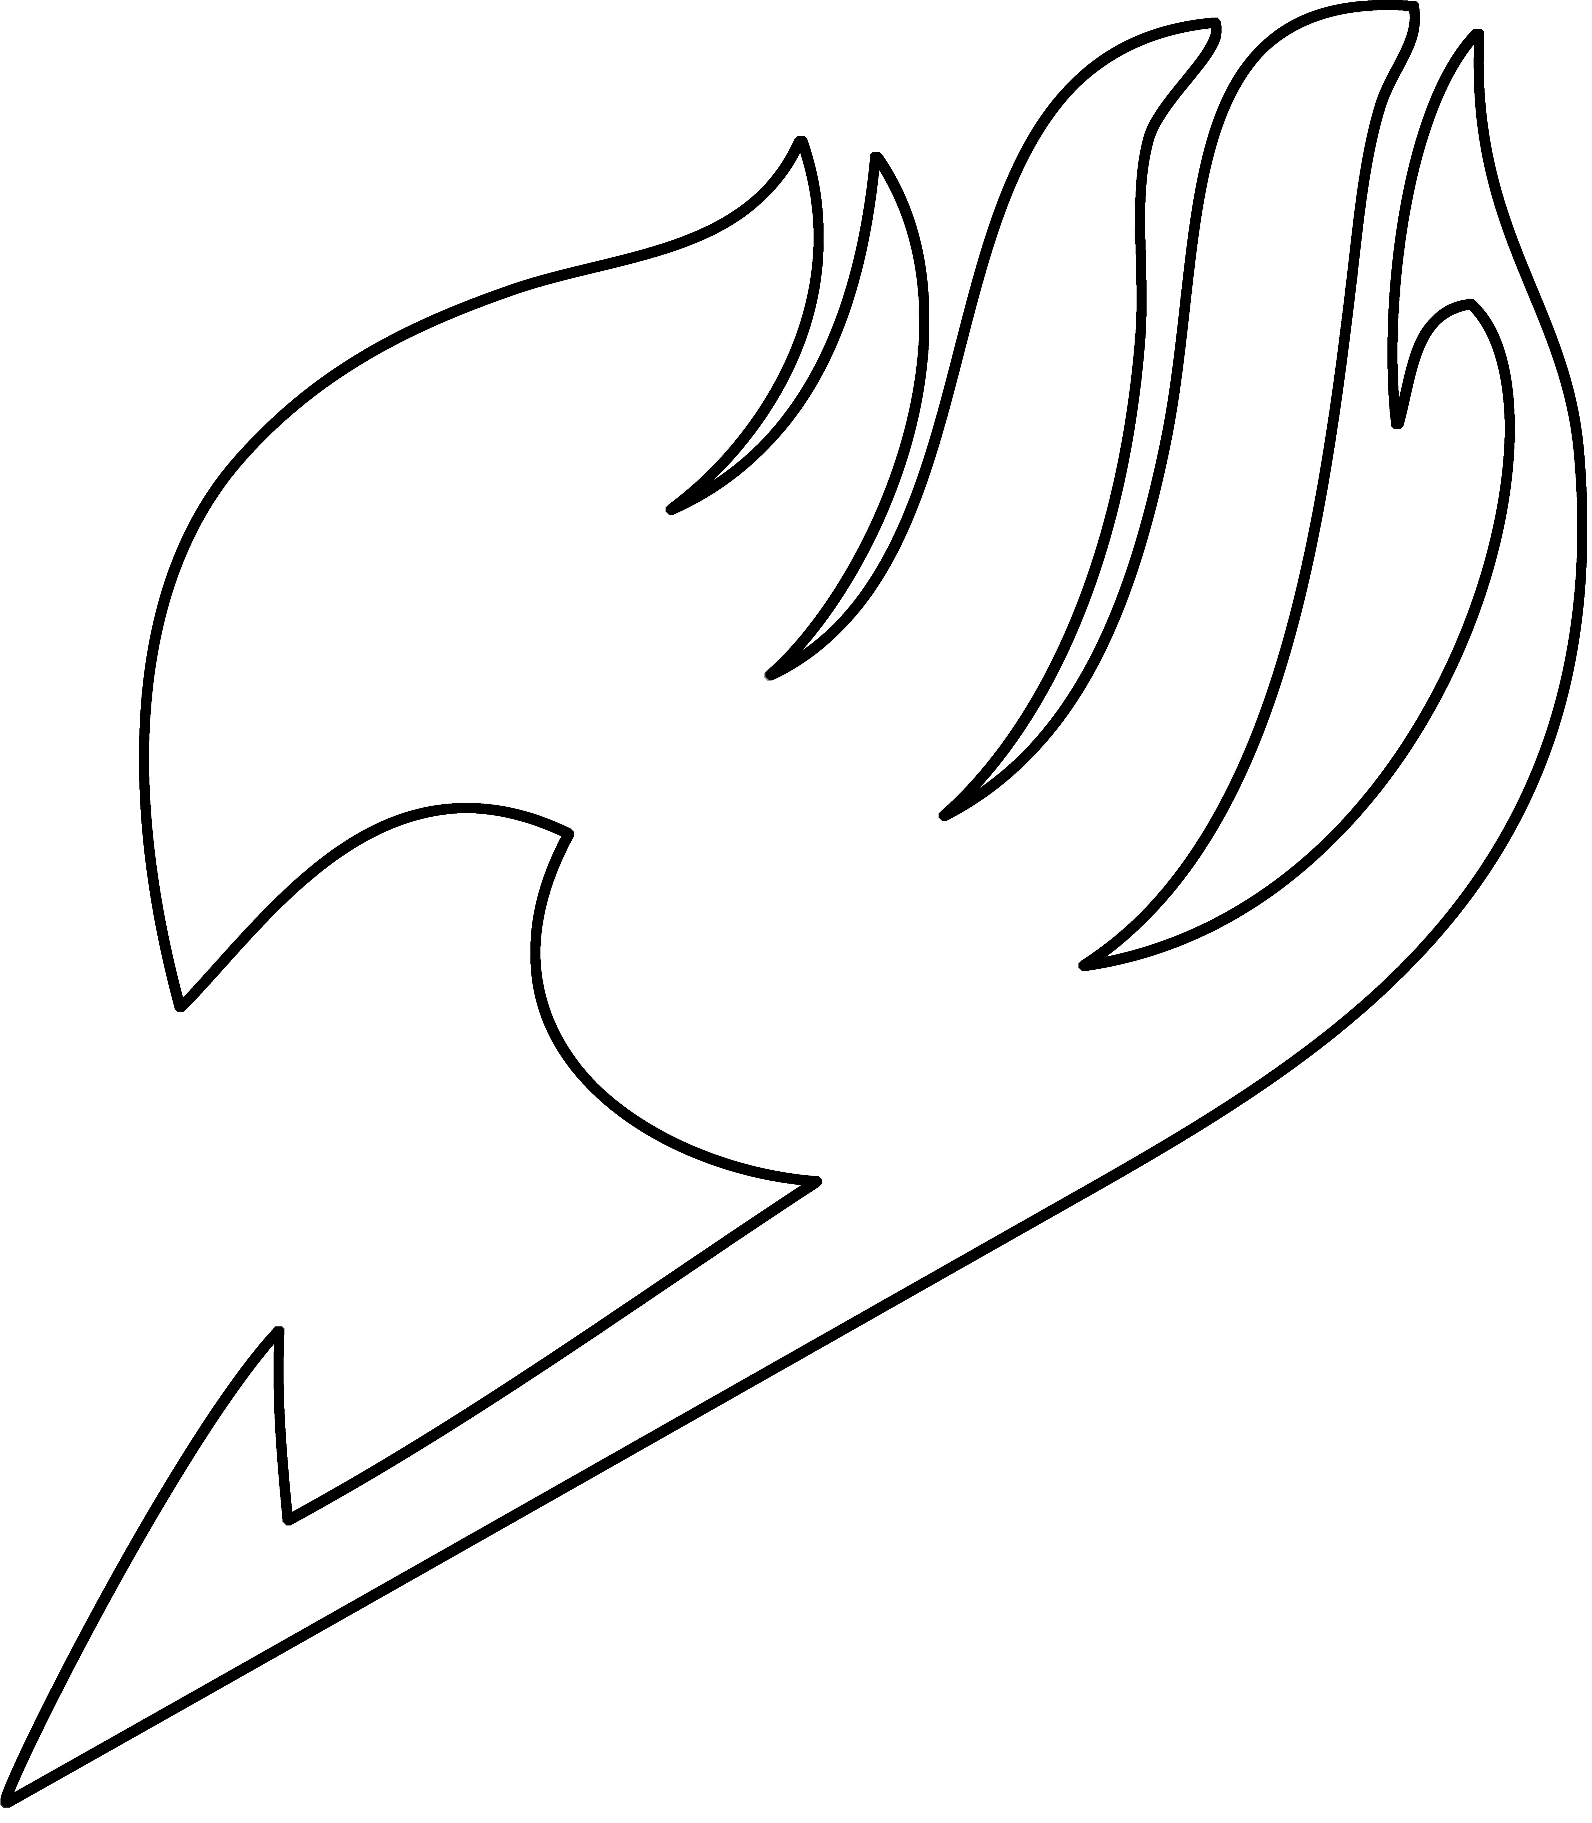 Fairytail drawing symbol. Image edolas fairy tail